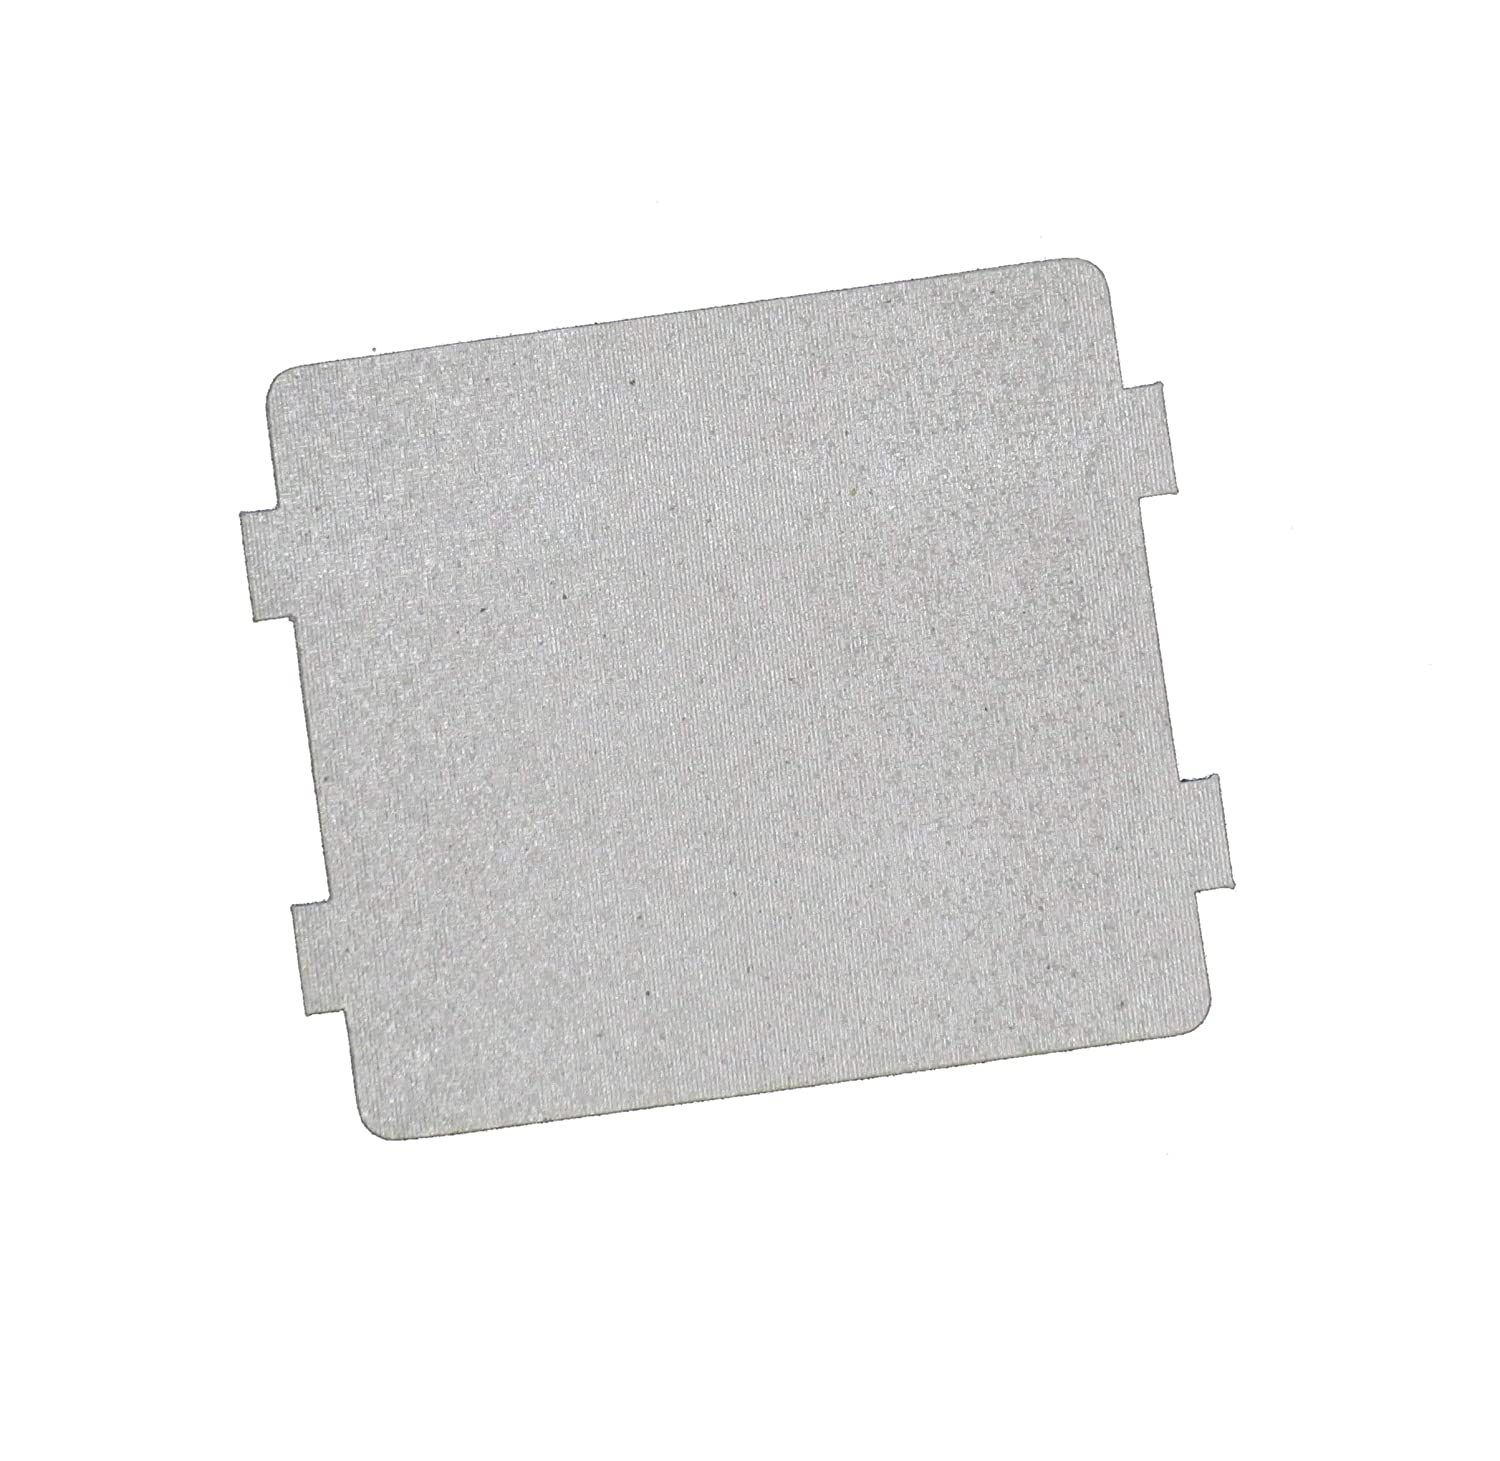 2 PCS Microwave Oven Parts Mica Slice Super Thick Heat Insulation Accessories